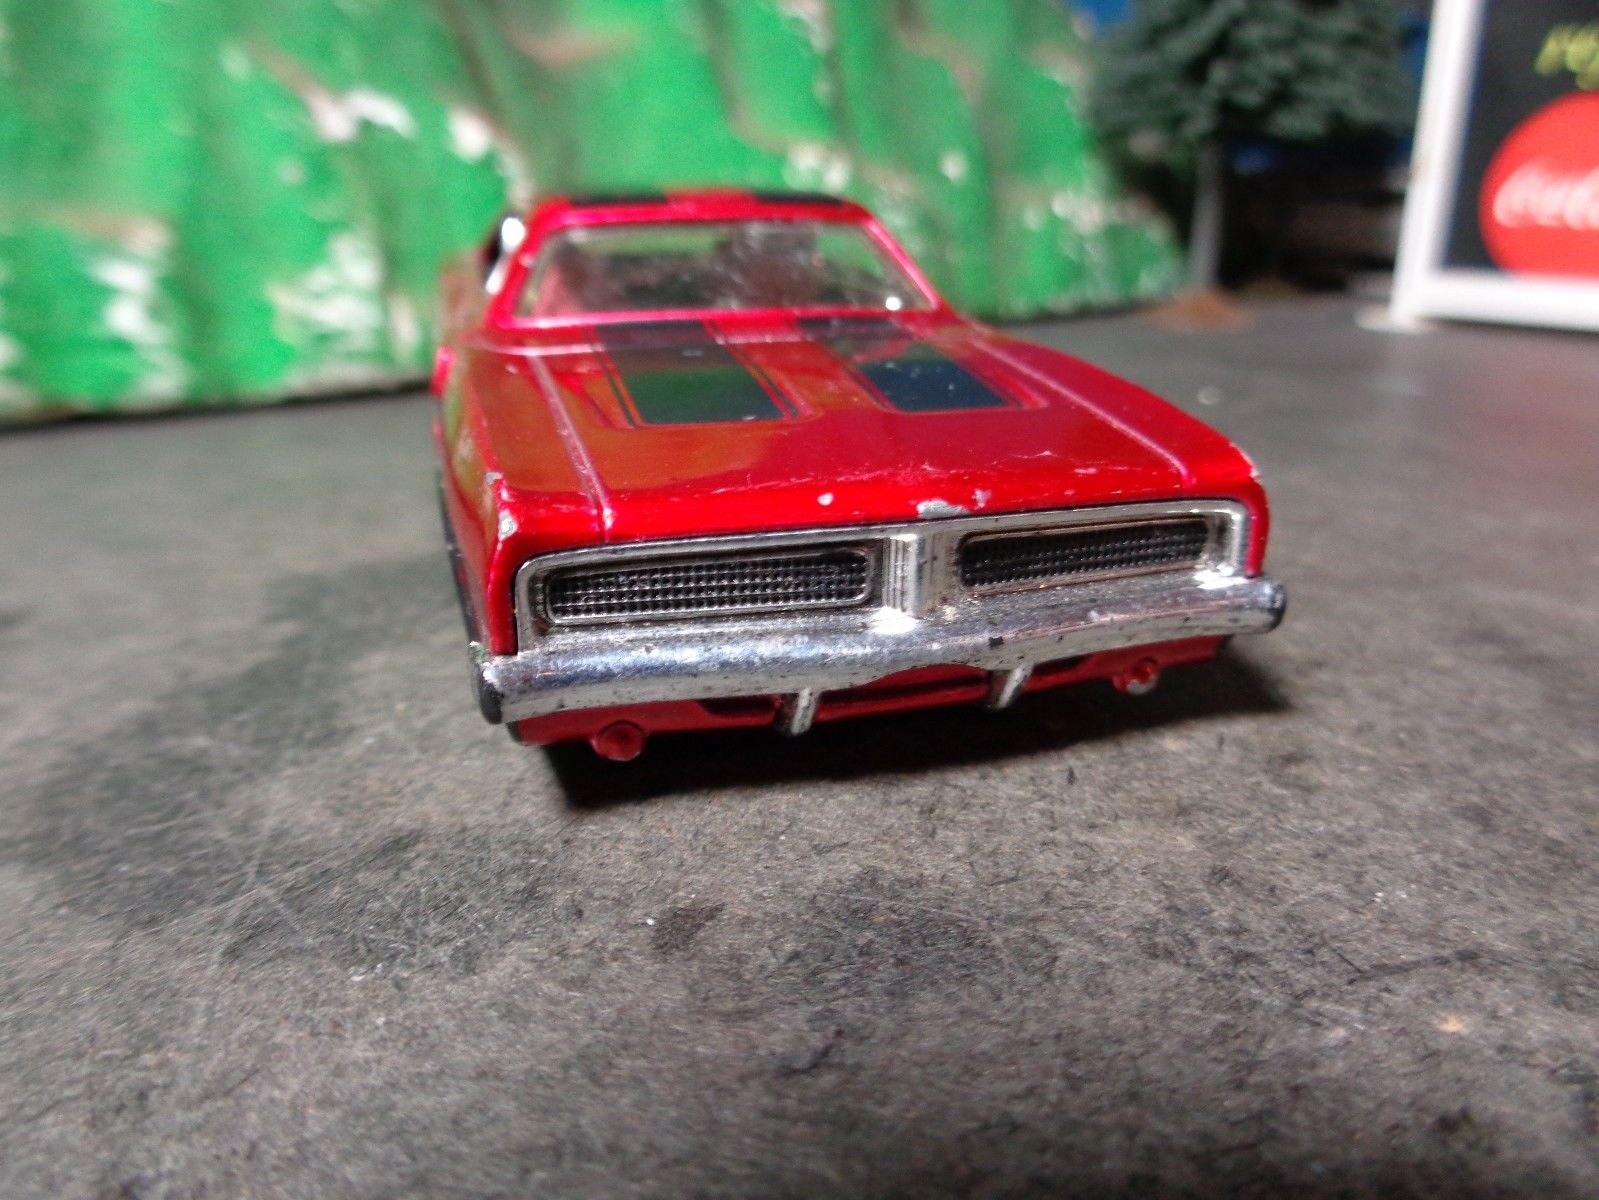 Amazing HOT WHEELS 1969 DODGE CHARGER 1:43 SCALE 5-50-14 2017/2018